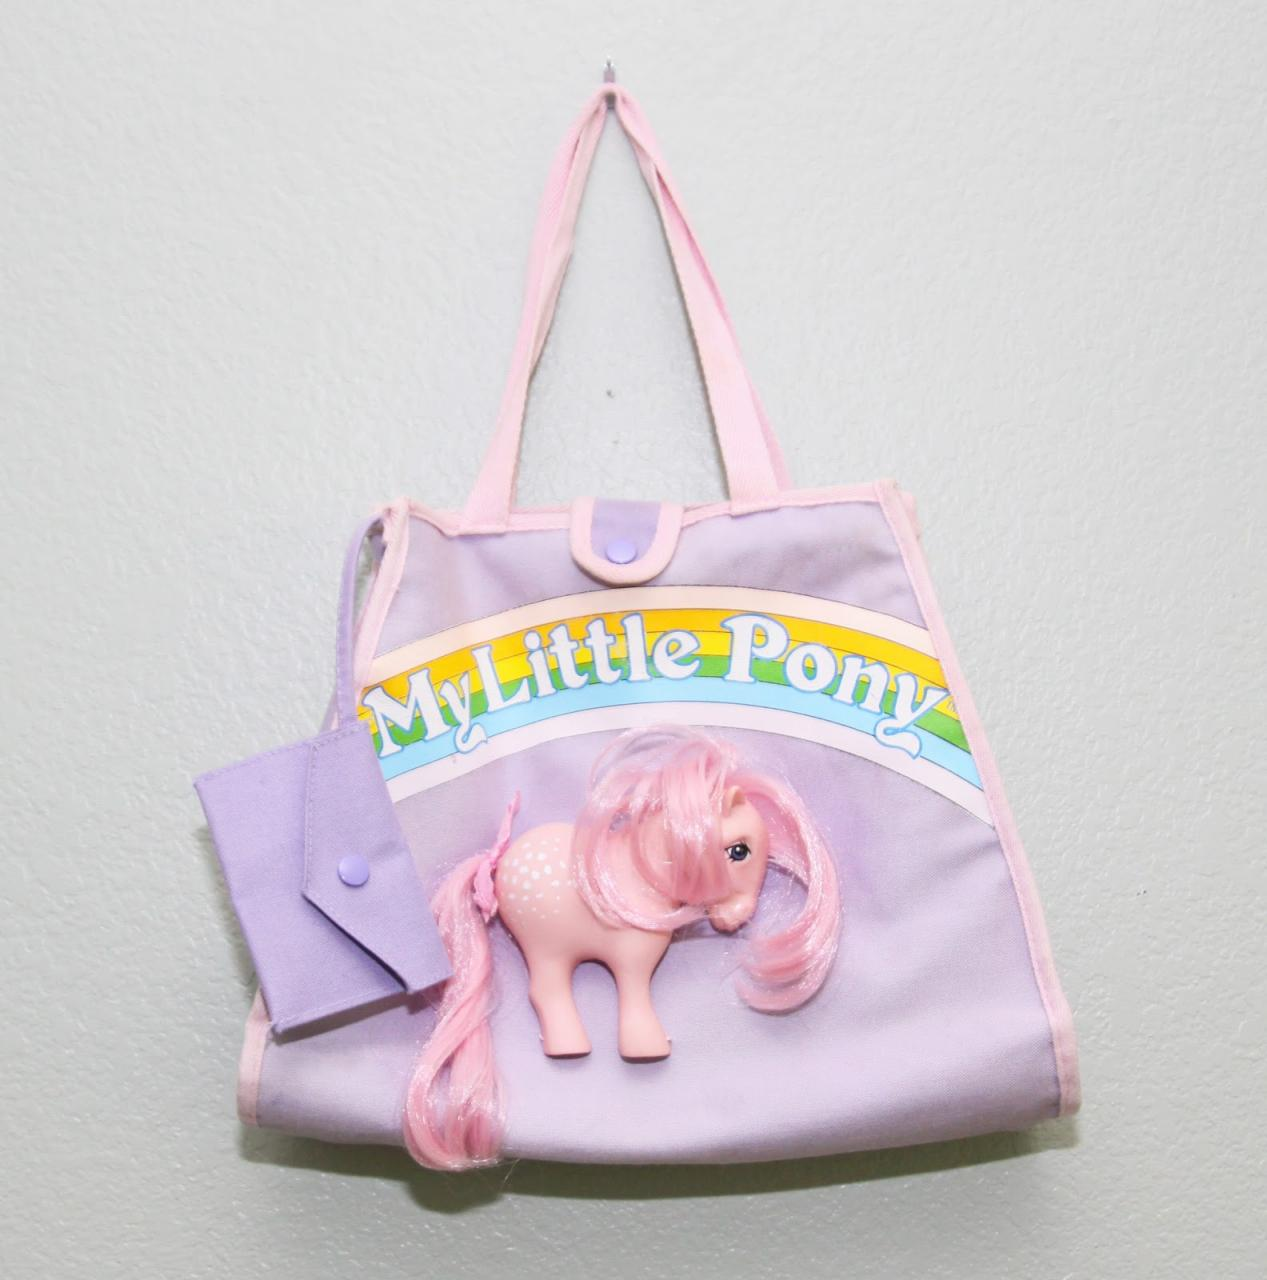 The infamous vintage My Little Pony Cotton Candy pony purse with half a pony sewn on